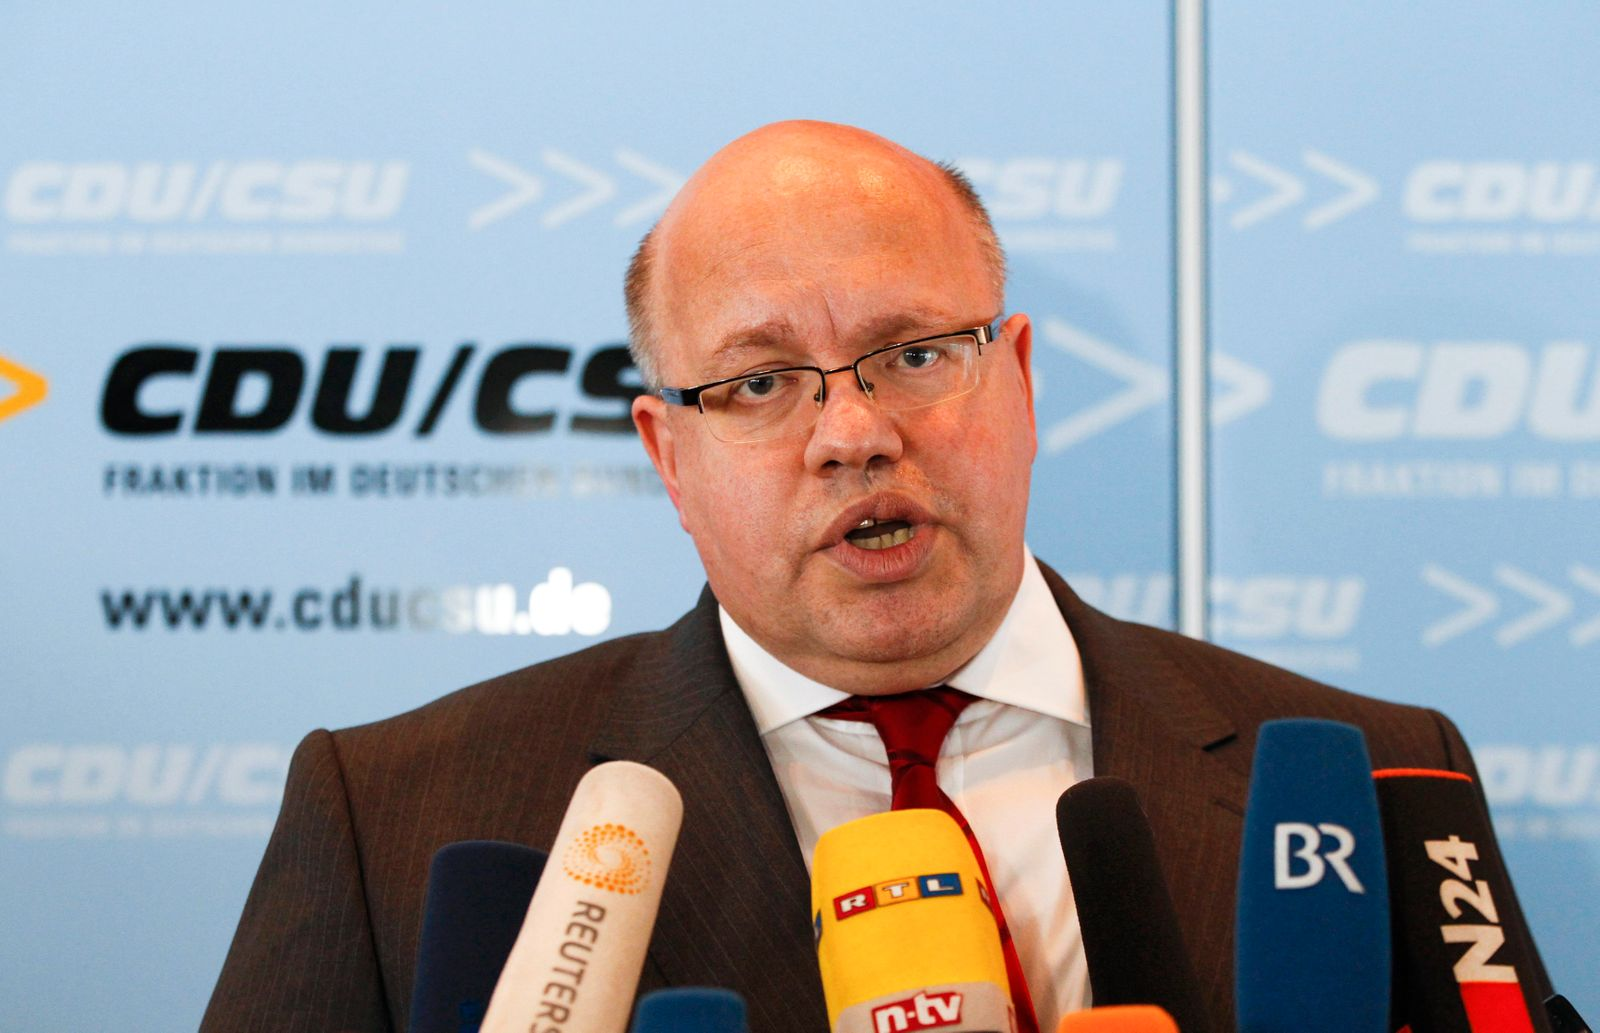 Altmaier, CDU party faction conservative leader in the Bundestag (lower house of parliament), addresses a news conference at party headquarters in Berlin